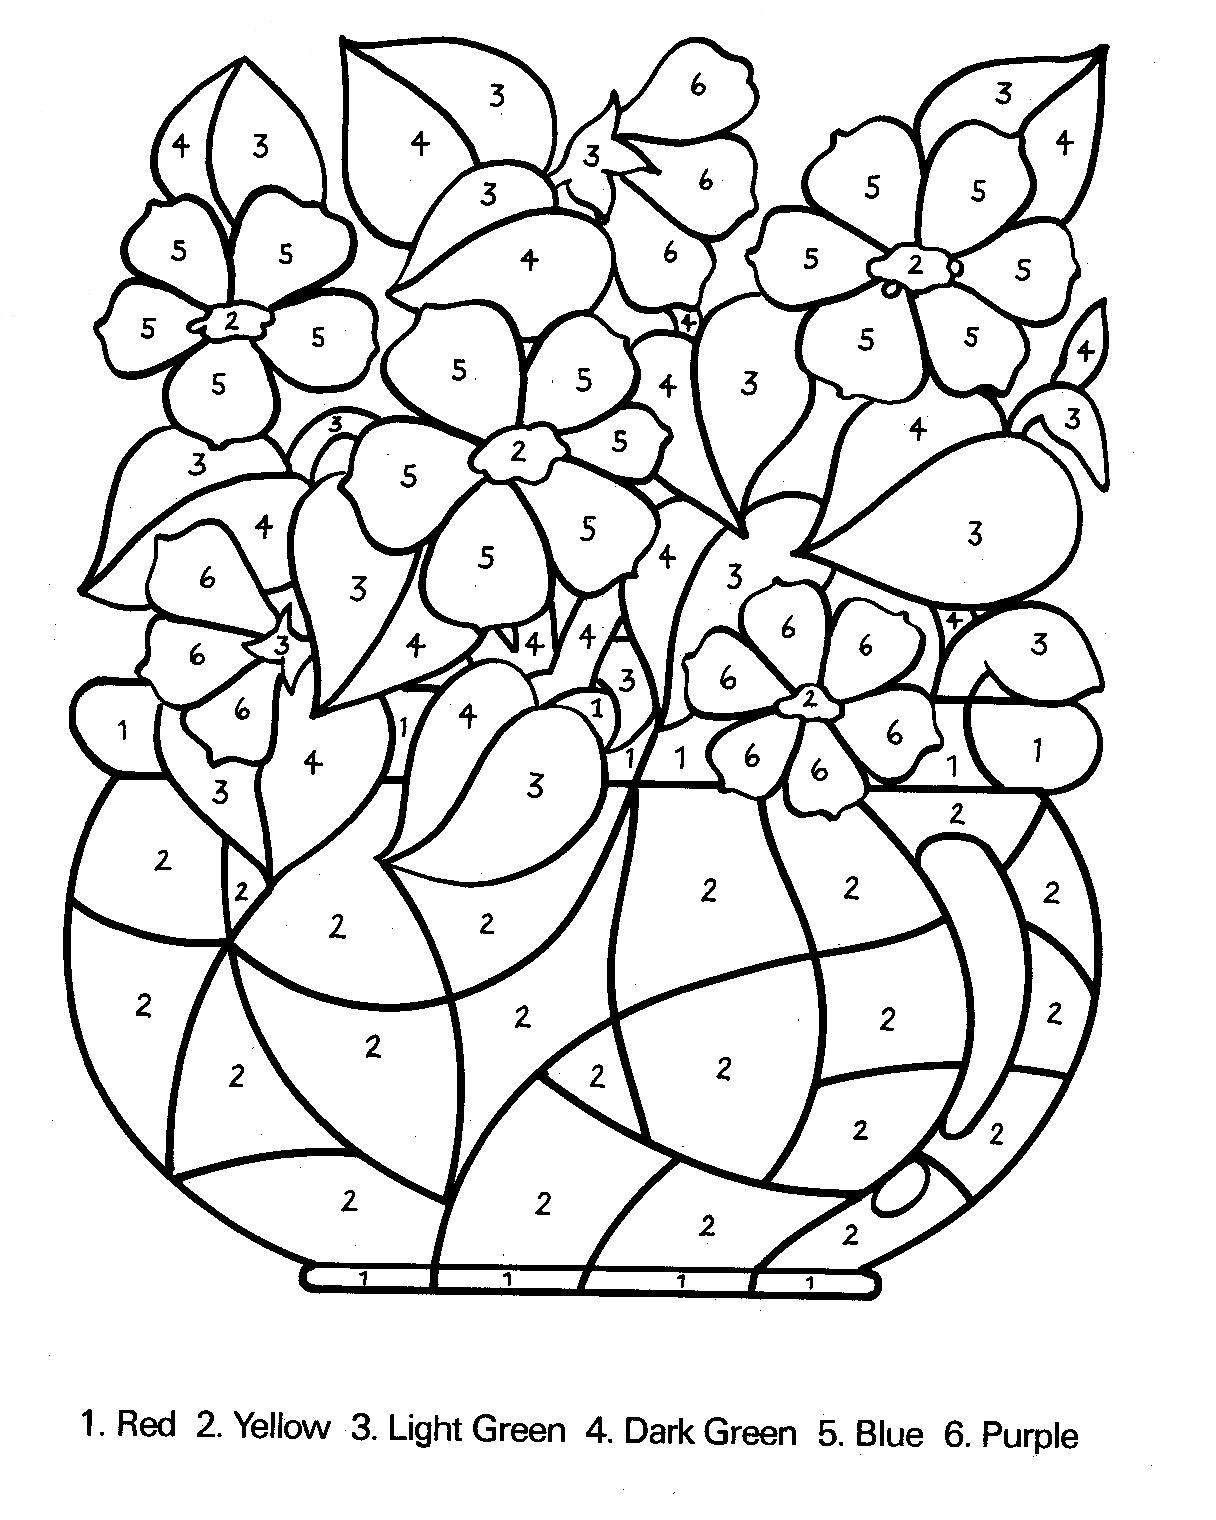 Coloring pages of spring things - Instead Of Using Numbers On The Picture Use Math Problems And Match The Color To The Sum Example Or Spell Words For Child To Read And Instead Of